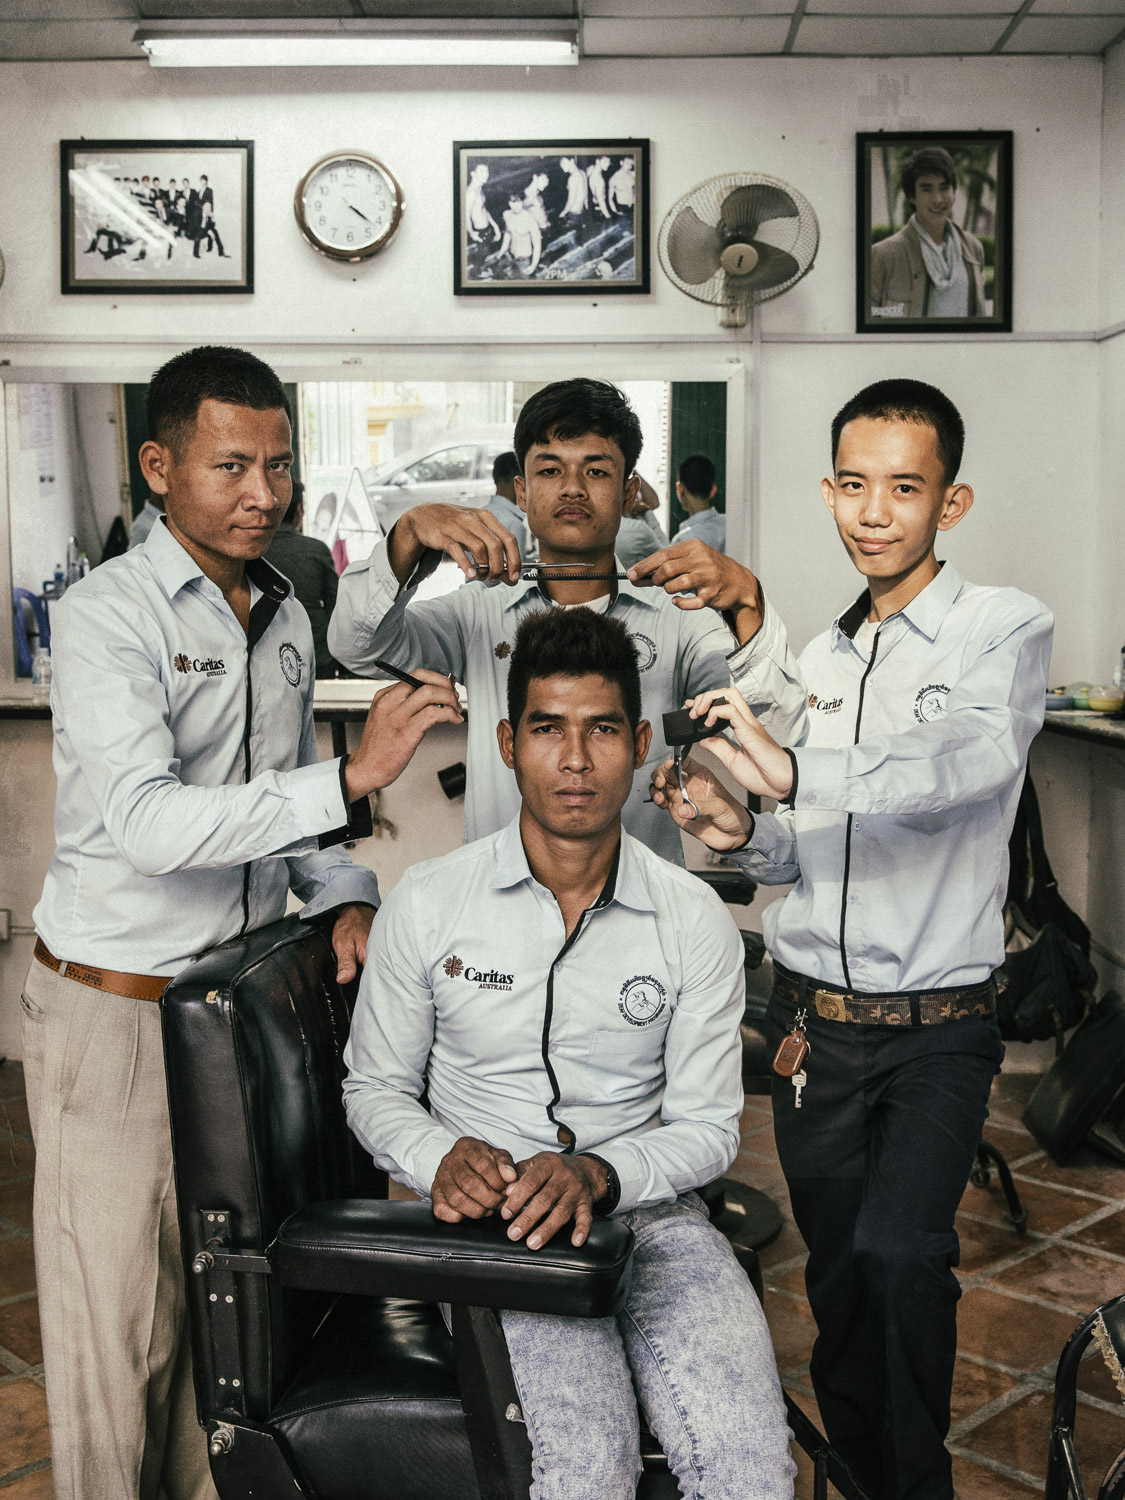 Deaf students at the barber vocational school located in the bottom floor of DDP's Phnom Penh center. Local people often use the services of the barbers at the training center which doubles as a barbershop.